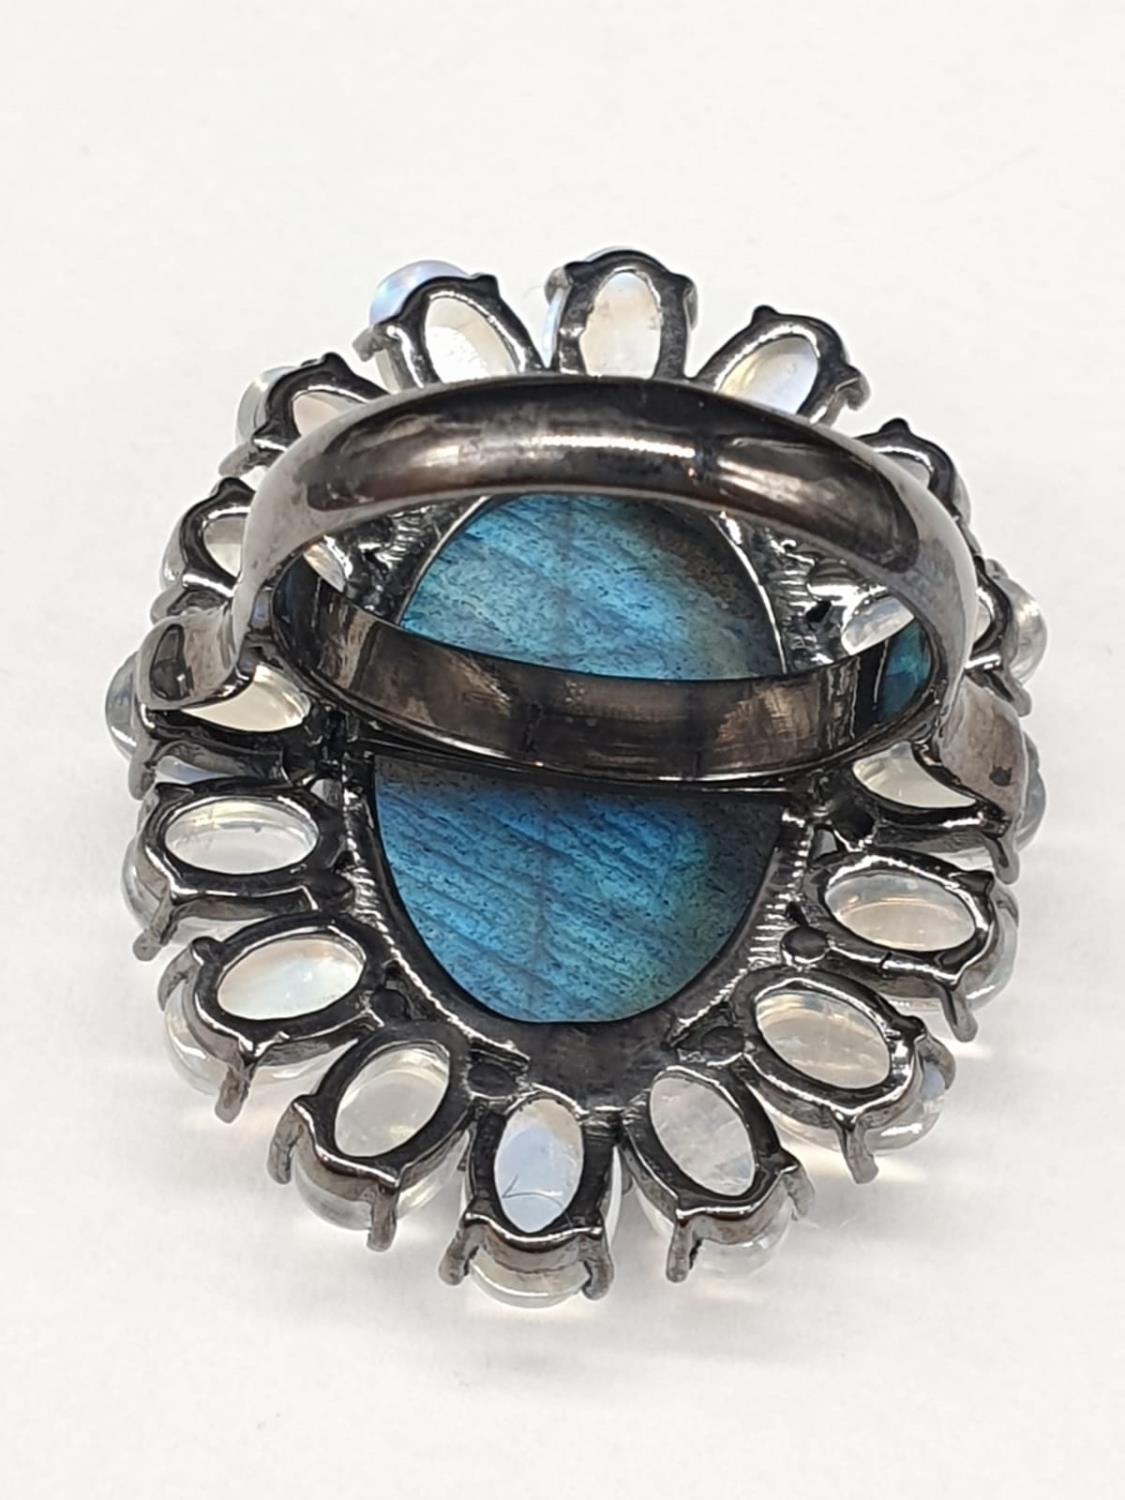 10.50 Ct Moonstones & 14.25 Ct Labradorite set within a blackened silver ring, weight 11.62g and - Image 5 of 7